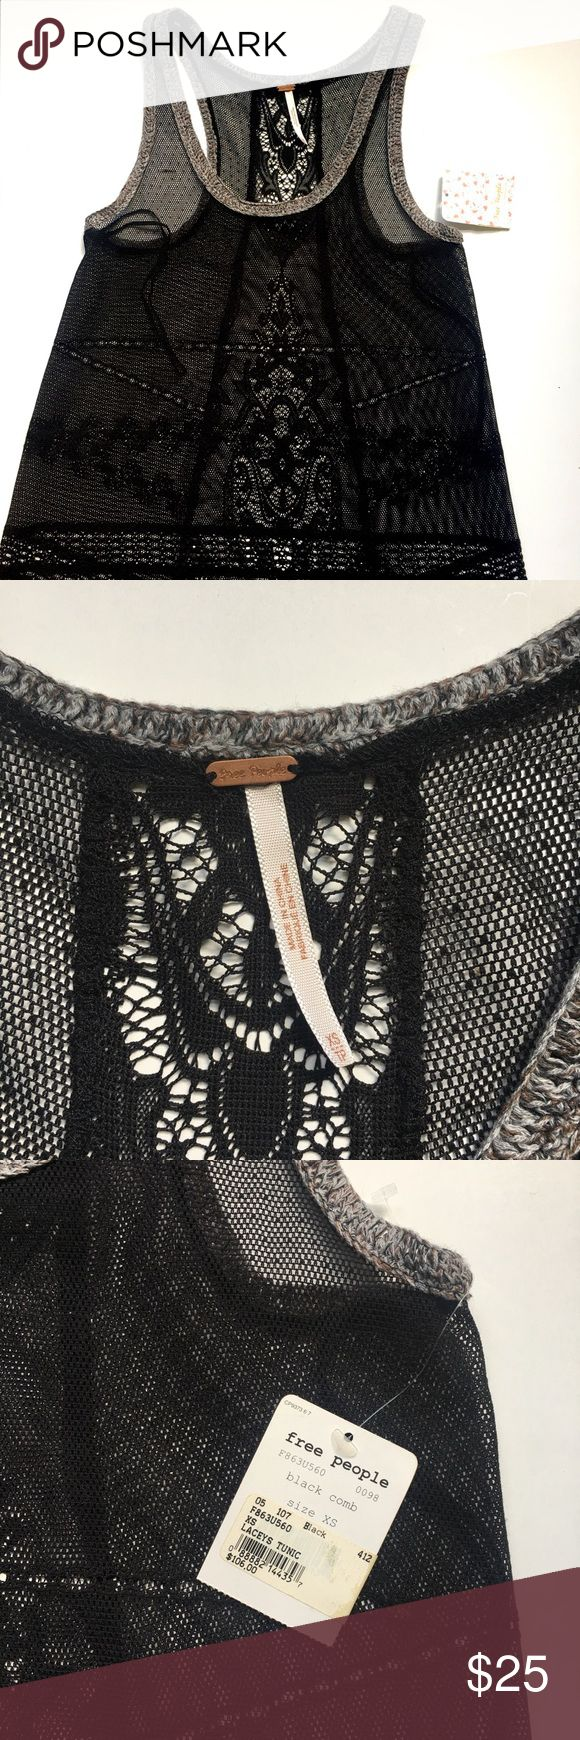 """Free People Black crochet lace tunic Free People Black lacy tunic tank top with a racer back, high low hem and gray piping. Such a pretty and delicate piece to use for layering!                                                      Measurements laid flat Full length 30"""" Bust 15"""" Free People Tops Tunics"""